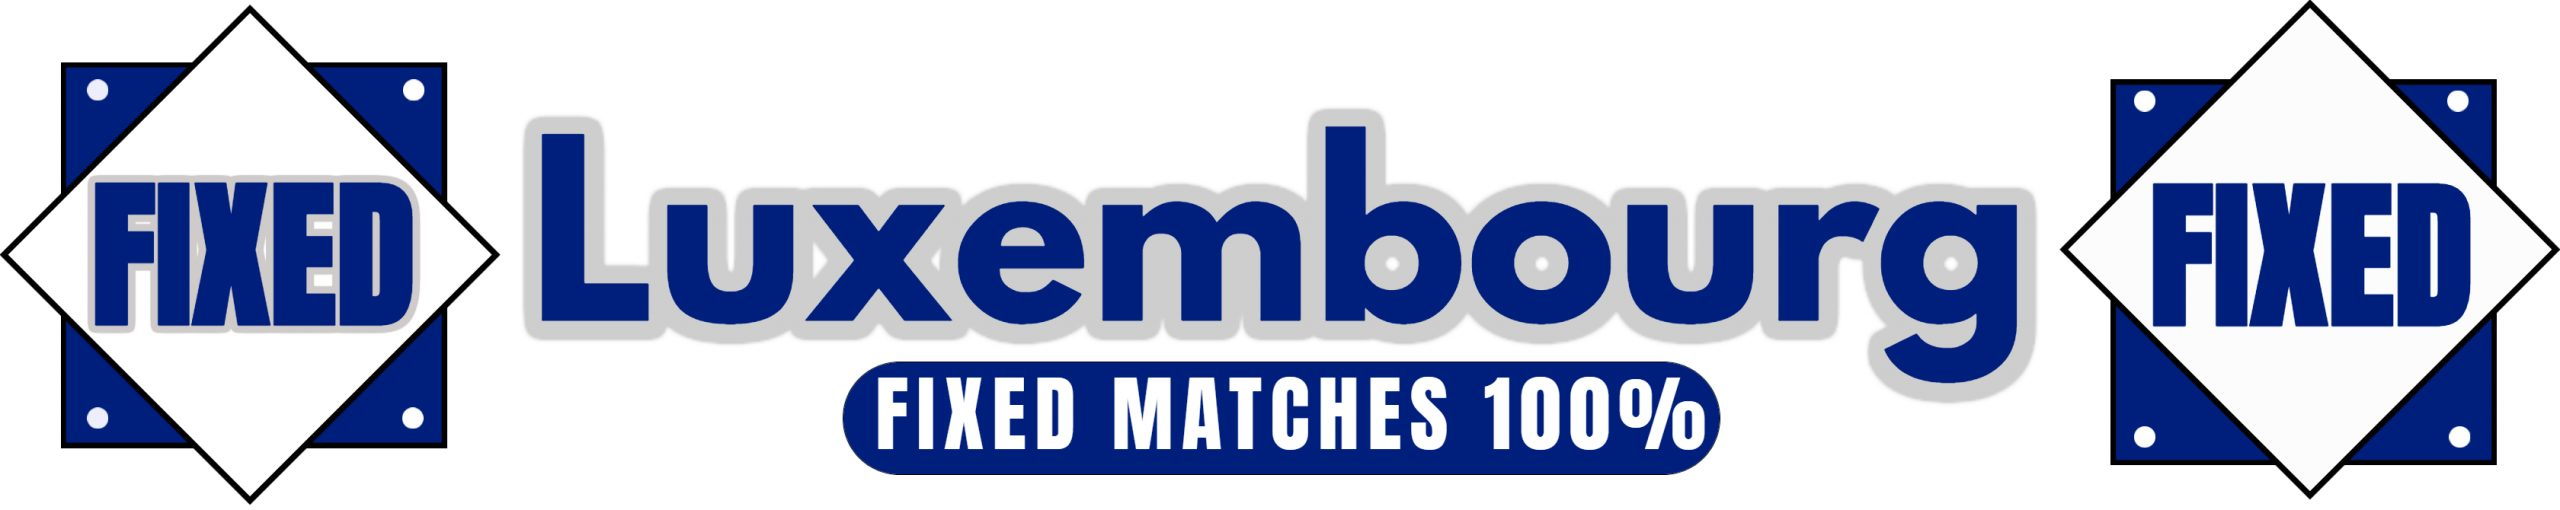 BETTING FIXED MATCHES